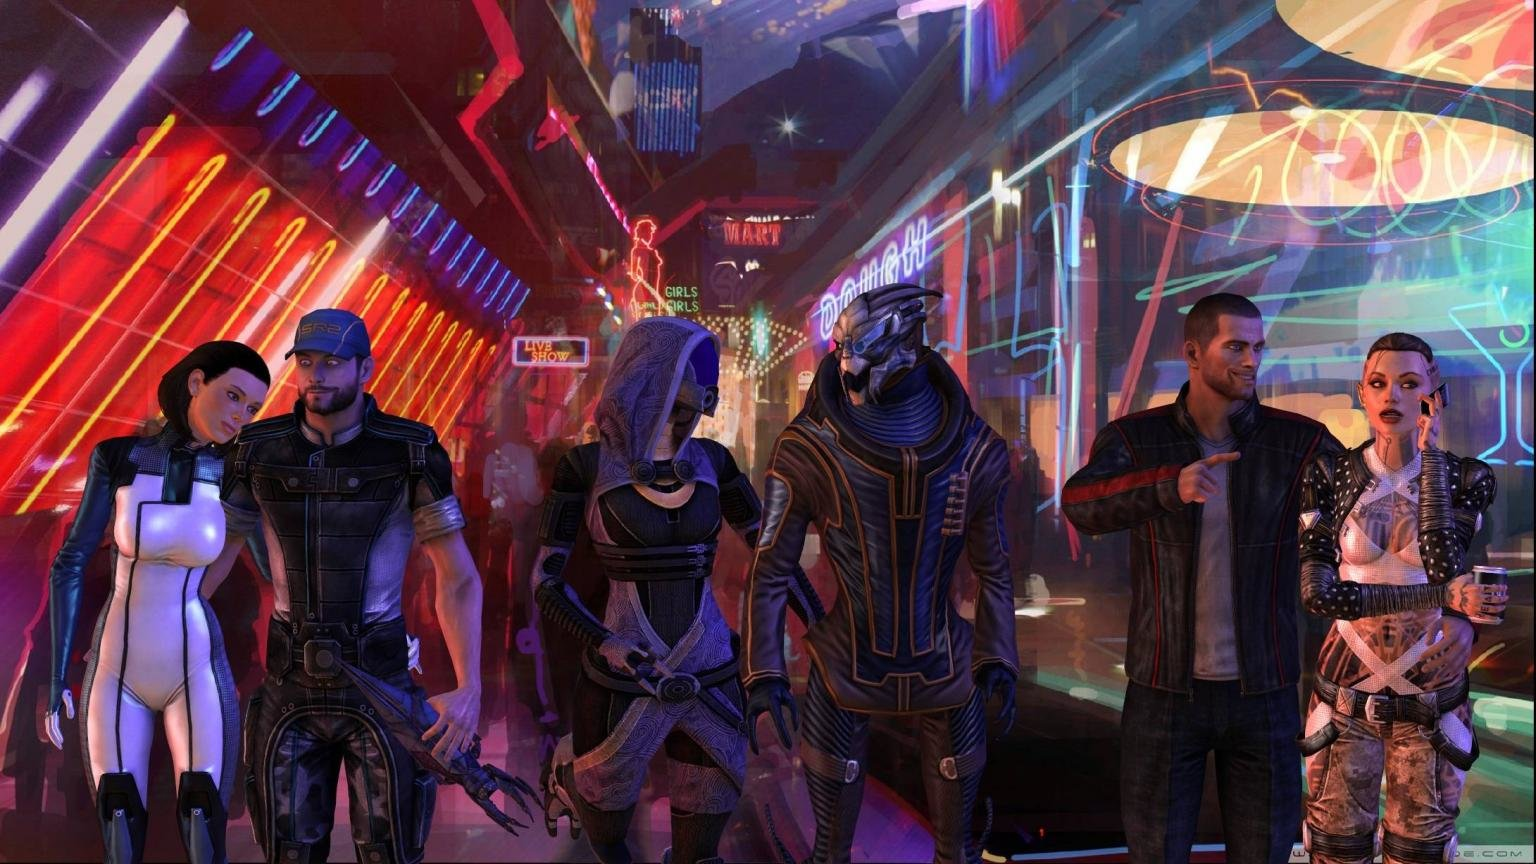 Awesome Mass Effect free wallpaper ID:457998 for hd 1536x864 desktop